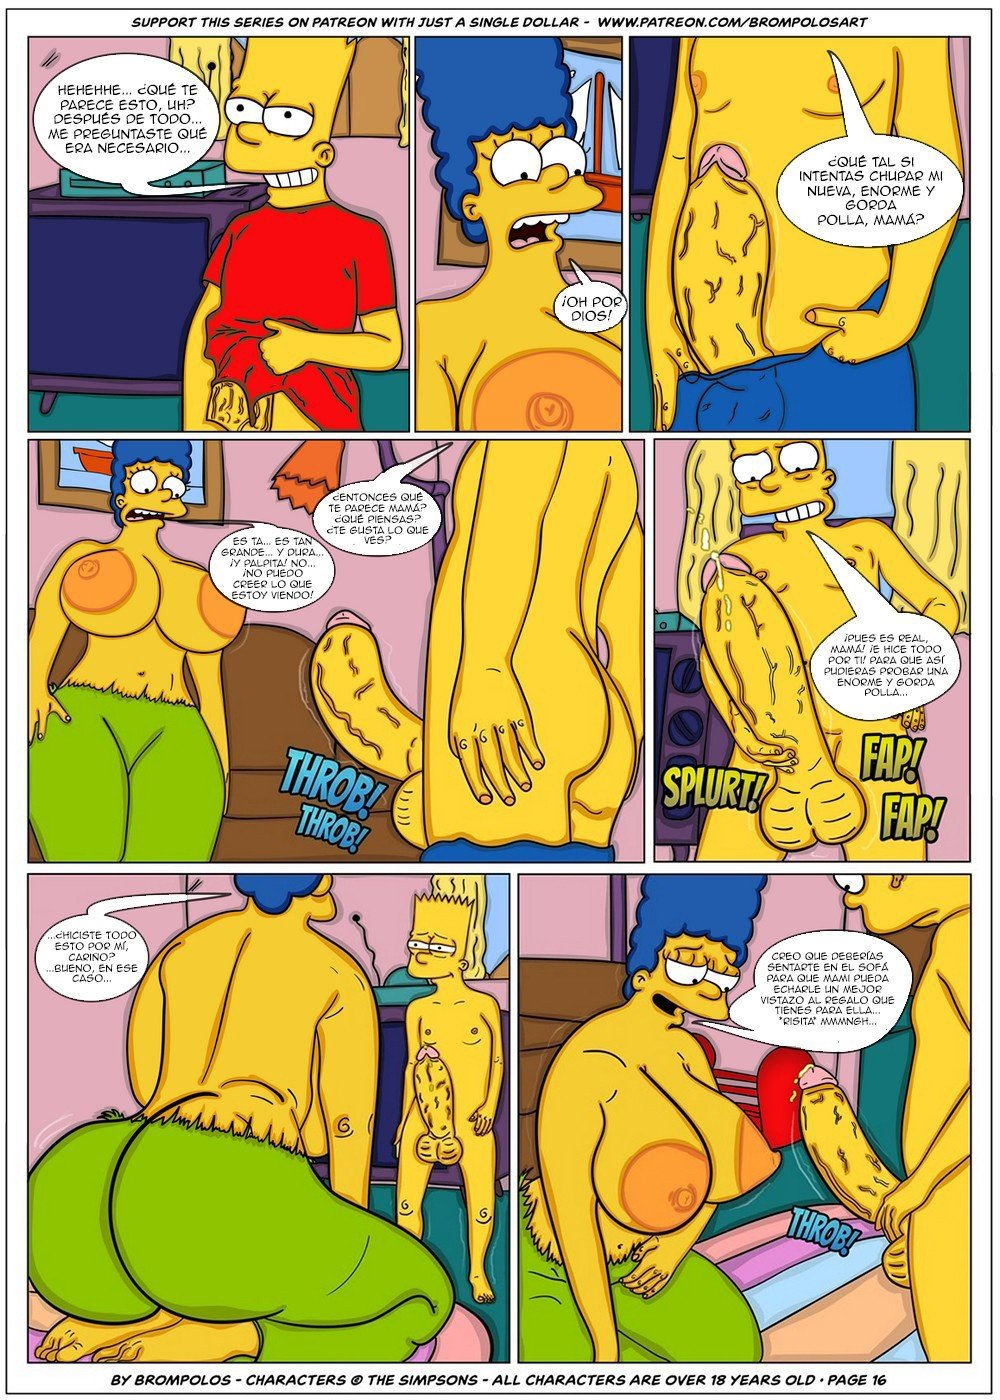 The Simpsons are The Sexenteins - 18